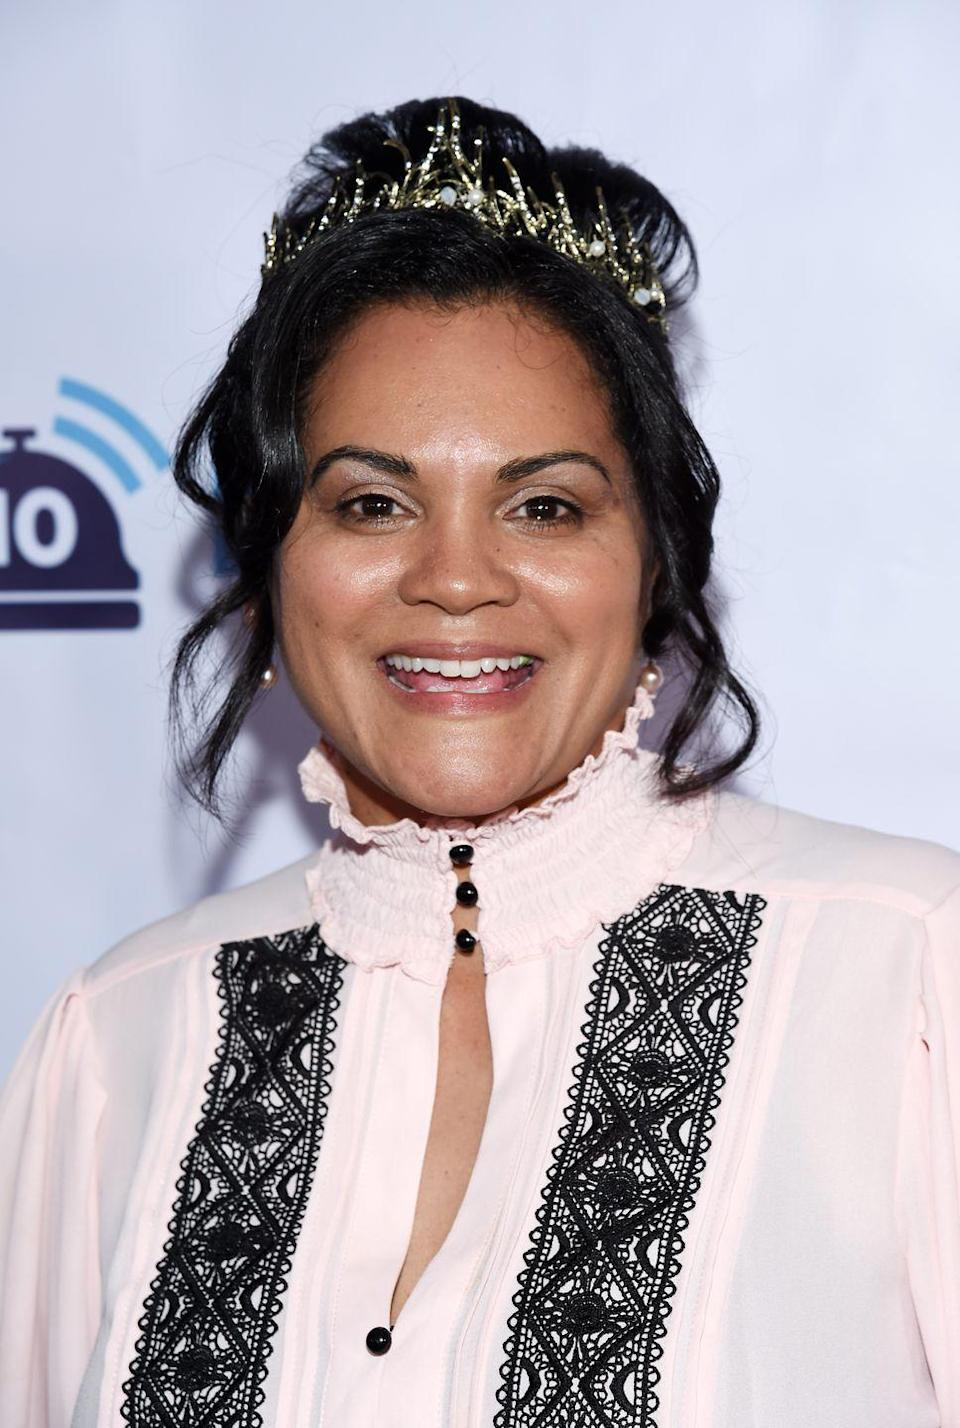 "<p>In a <a href=""https://my.xfinity.com/ed/tv/2020/02/11/survivor-champion-sandra-diaz-twine-if-i-win-a-third-time-im-going-to-have-a-bigger-crown/"" rel=""nofollow noopener"" target=""_blank"" data-ylk=""slk:February 2020"" class=""link rapid-noclick-resp"">February 2020</a> interview, Sandra said that she went back to her job at a law firm and her ""regular life"" following <em>Survivor: Game Changers. </em>She also shared that (at the time) her family was planning to move from Florida to Texas. </p>"